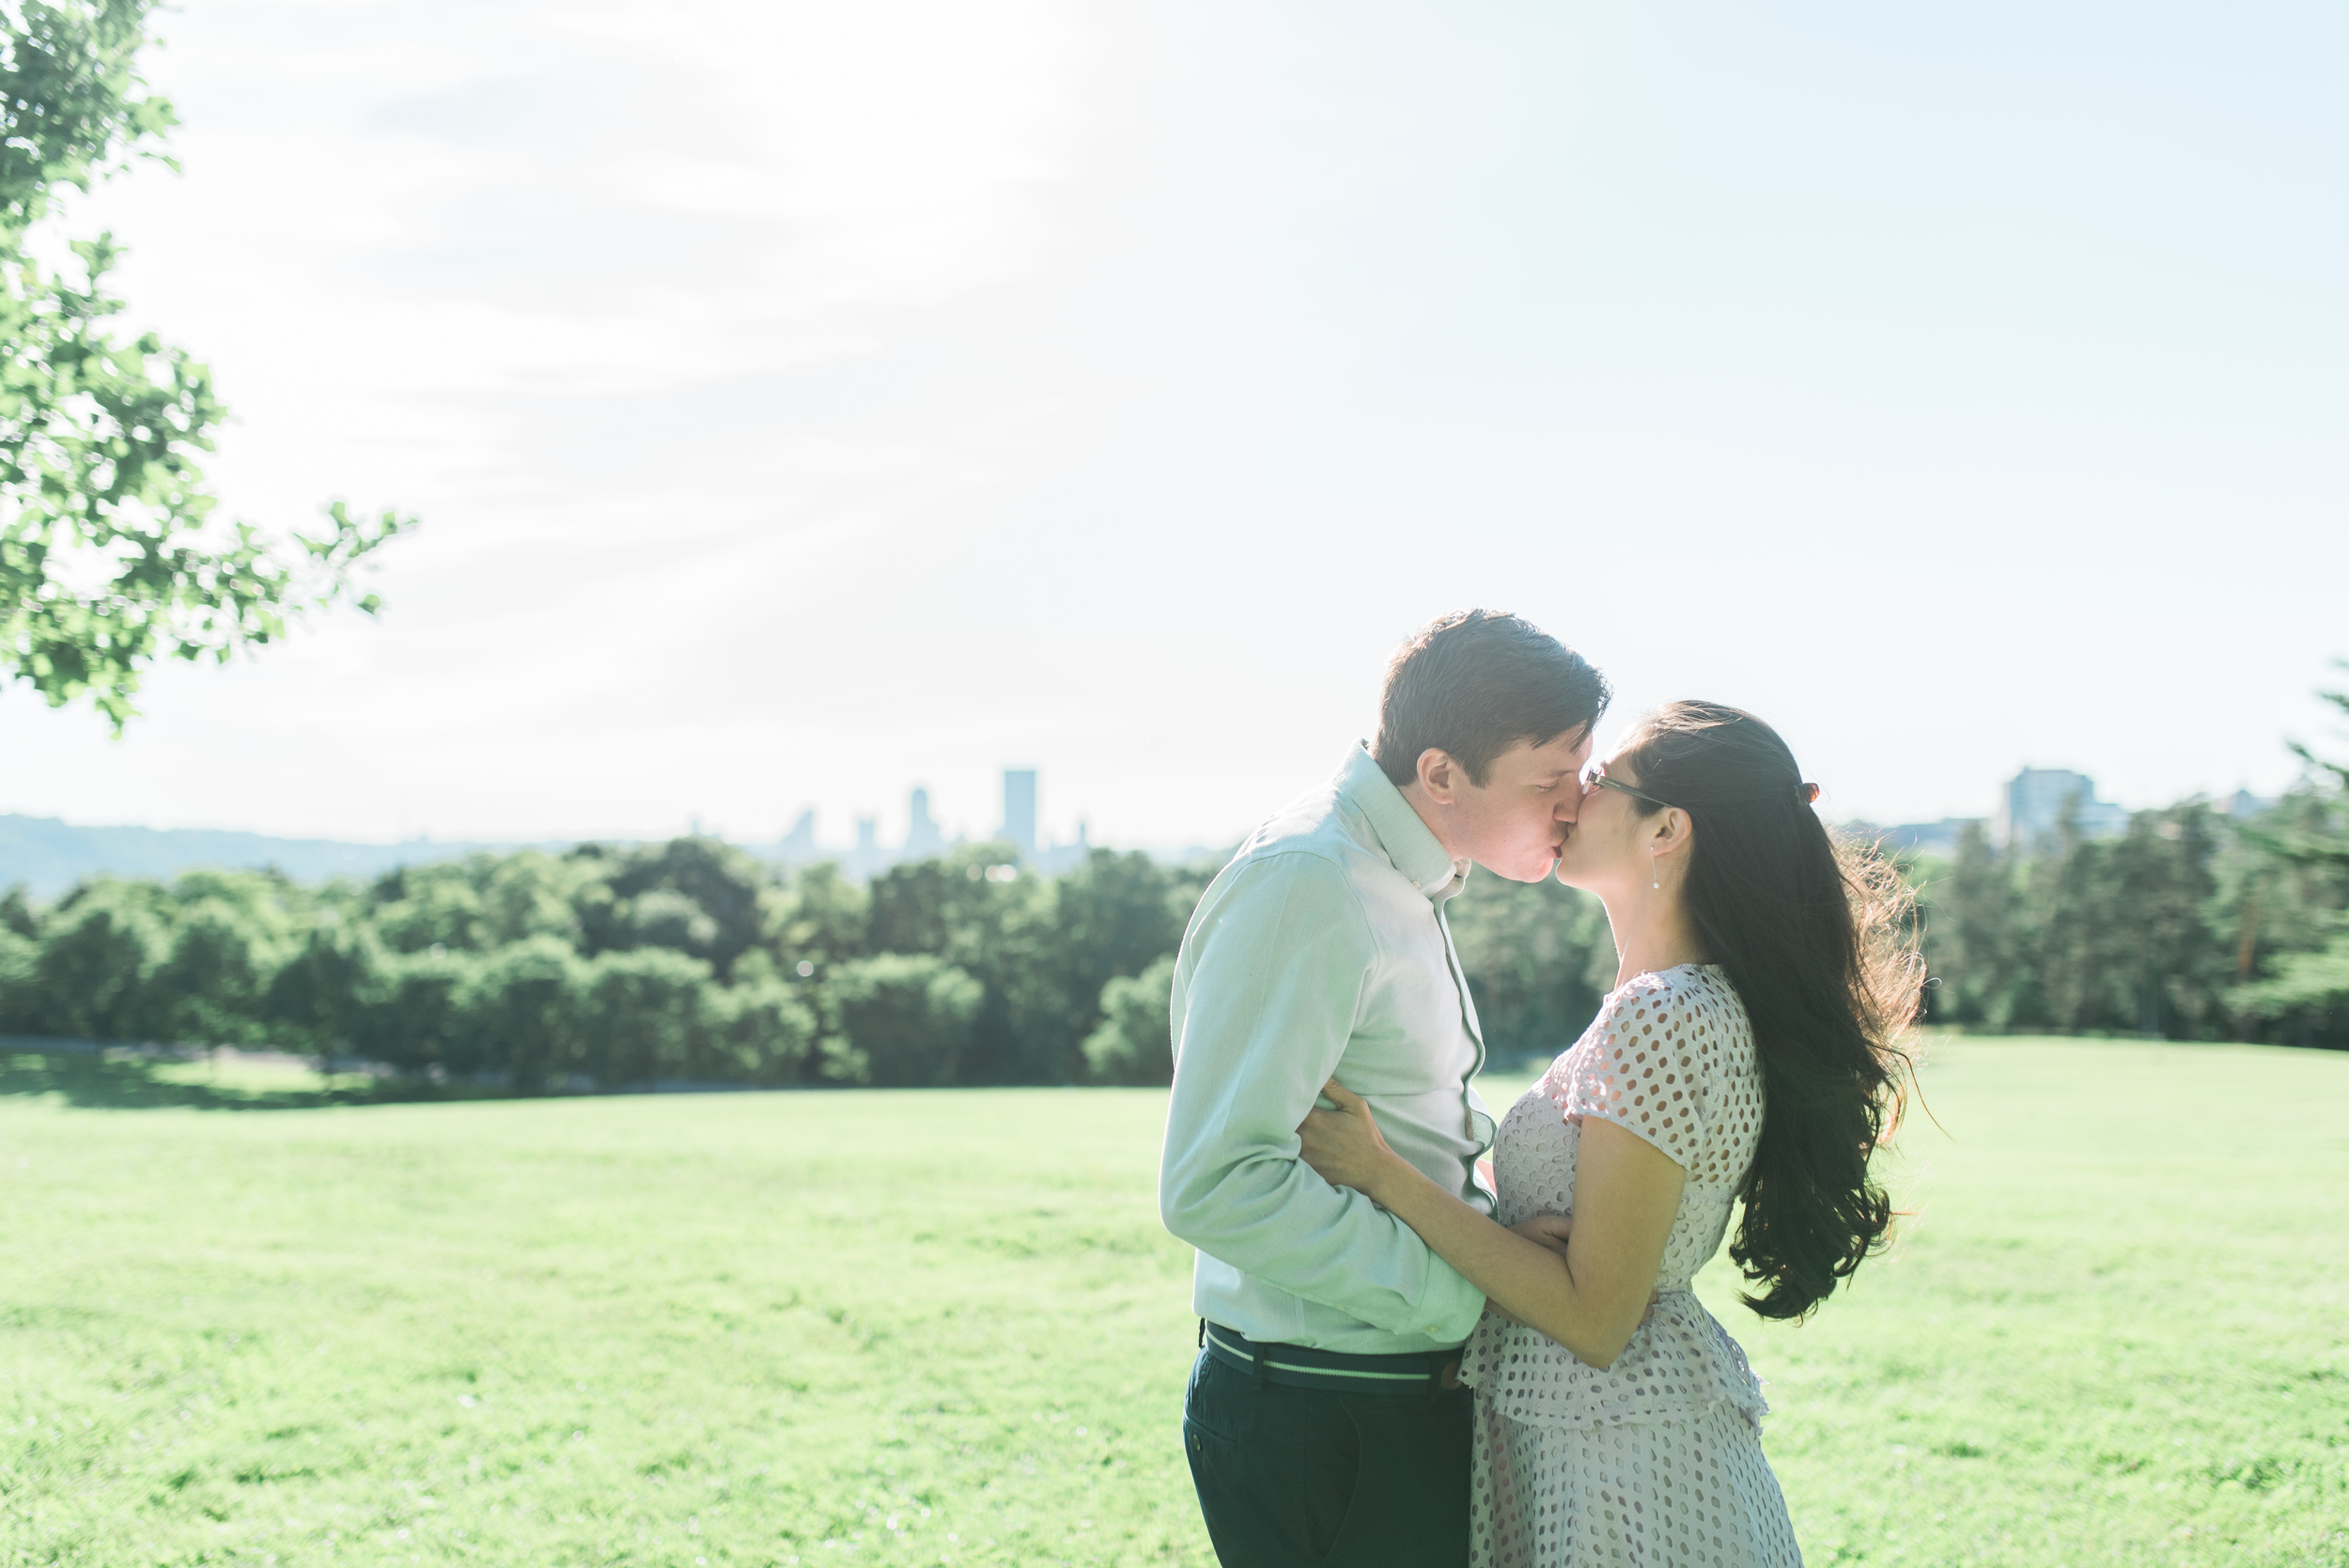 Engagement Pictures, Engagement Photography, Pittsburgh Wedding Photographer